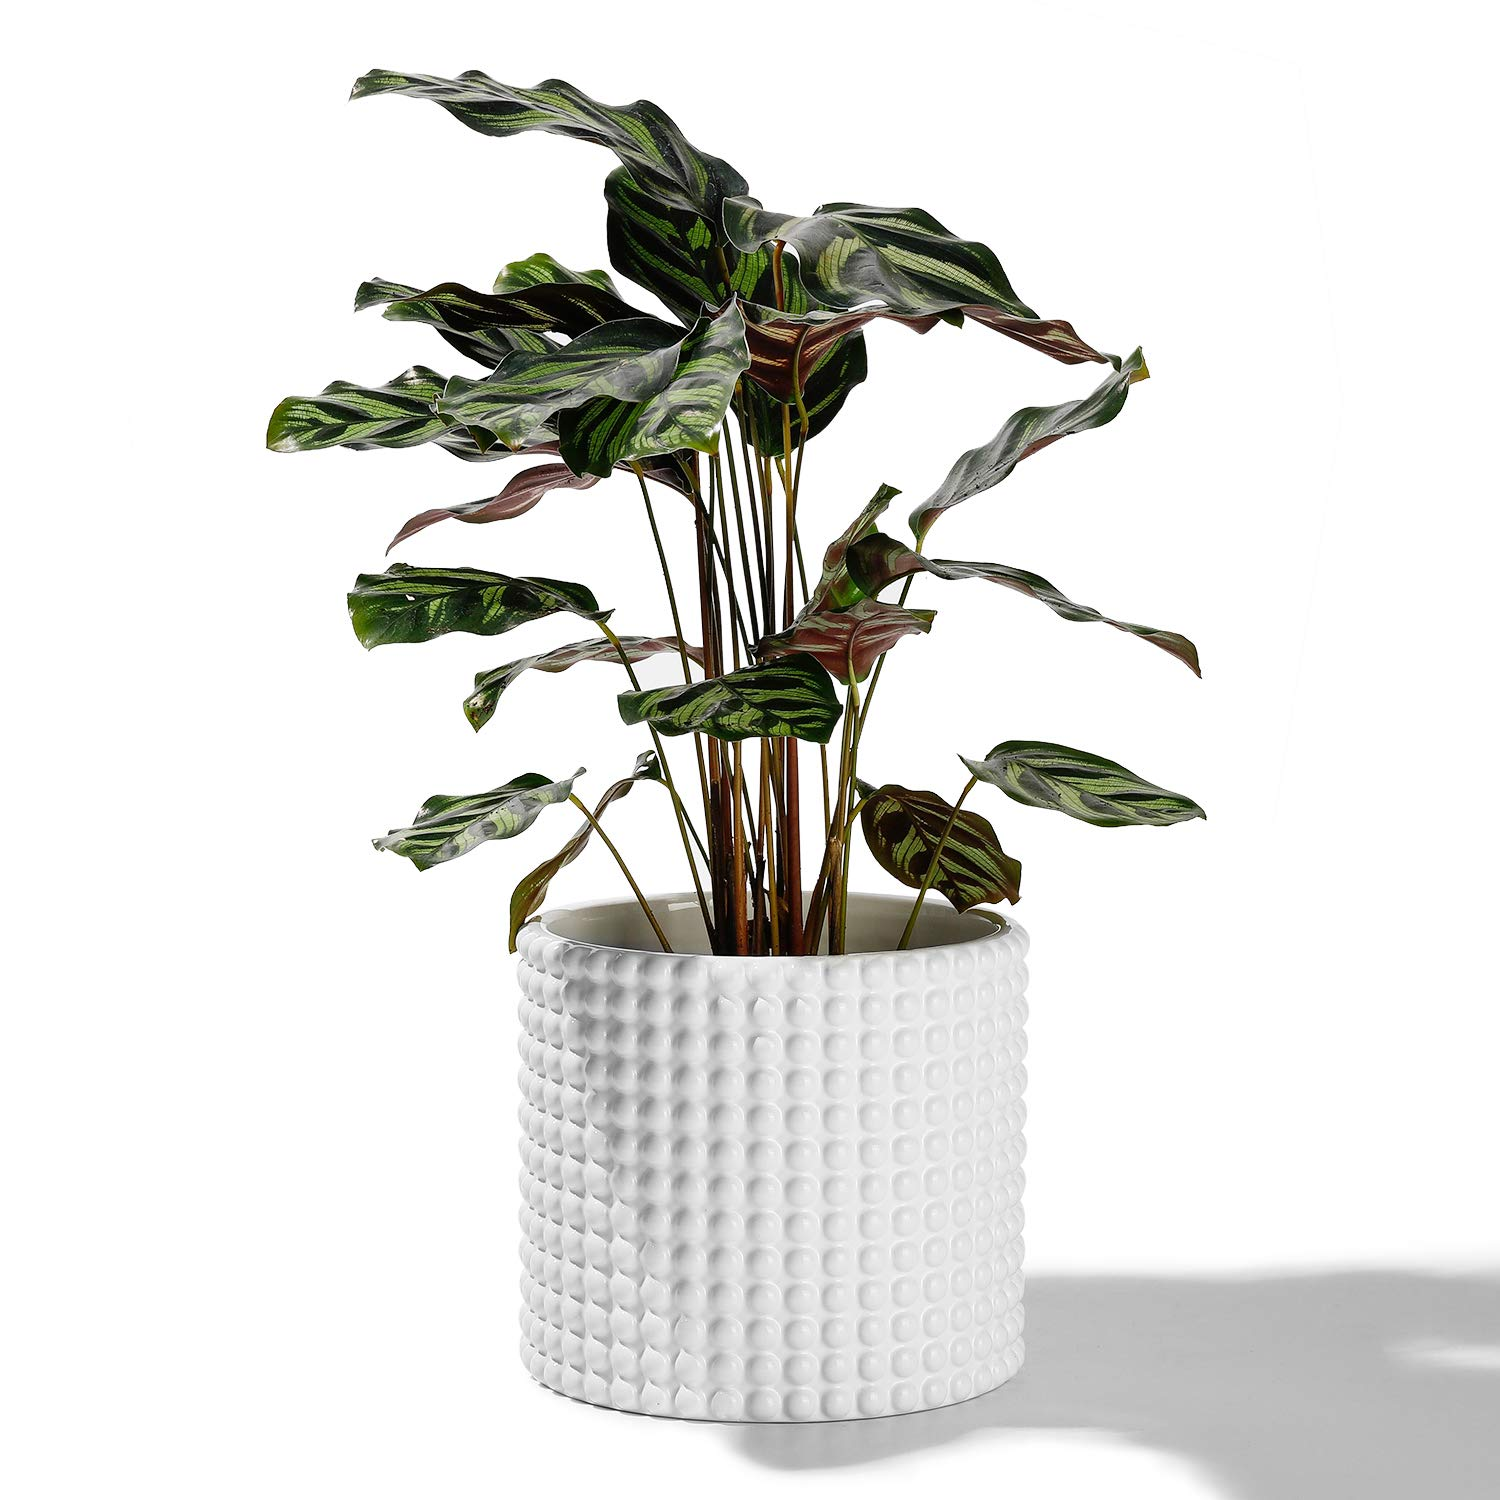 POTEY 055102 White Ceramic Vintage-Style Hobnail Textured Flower Planter Pots for Indoor Plants Flower Succulent with Drainage Hole(6.1 Inch D, Plant NOT Included)